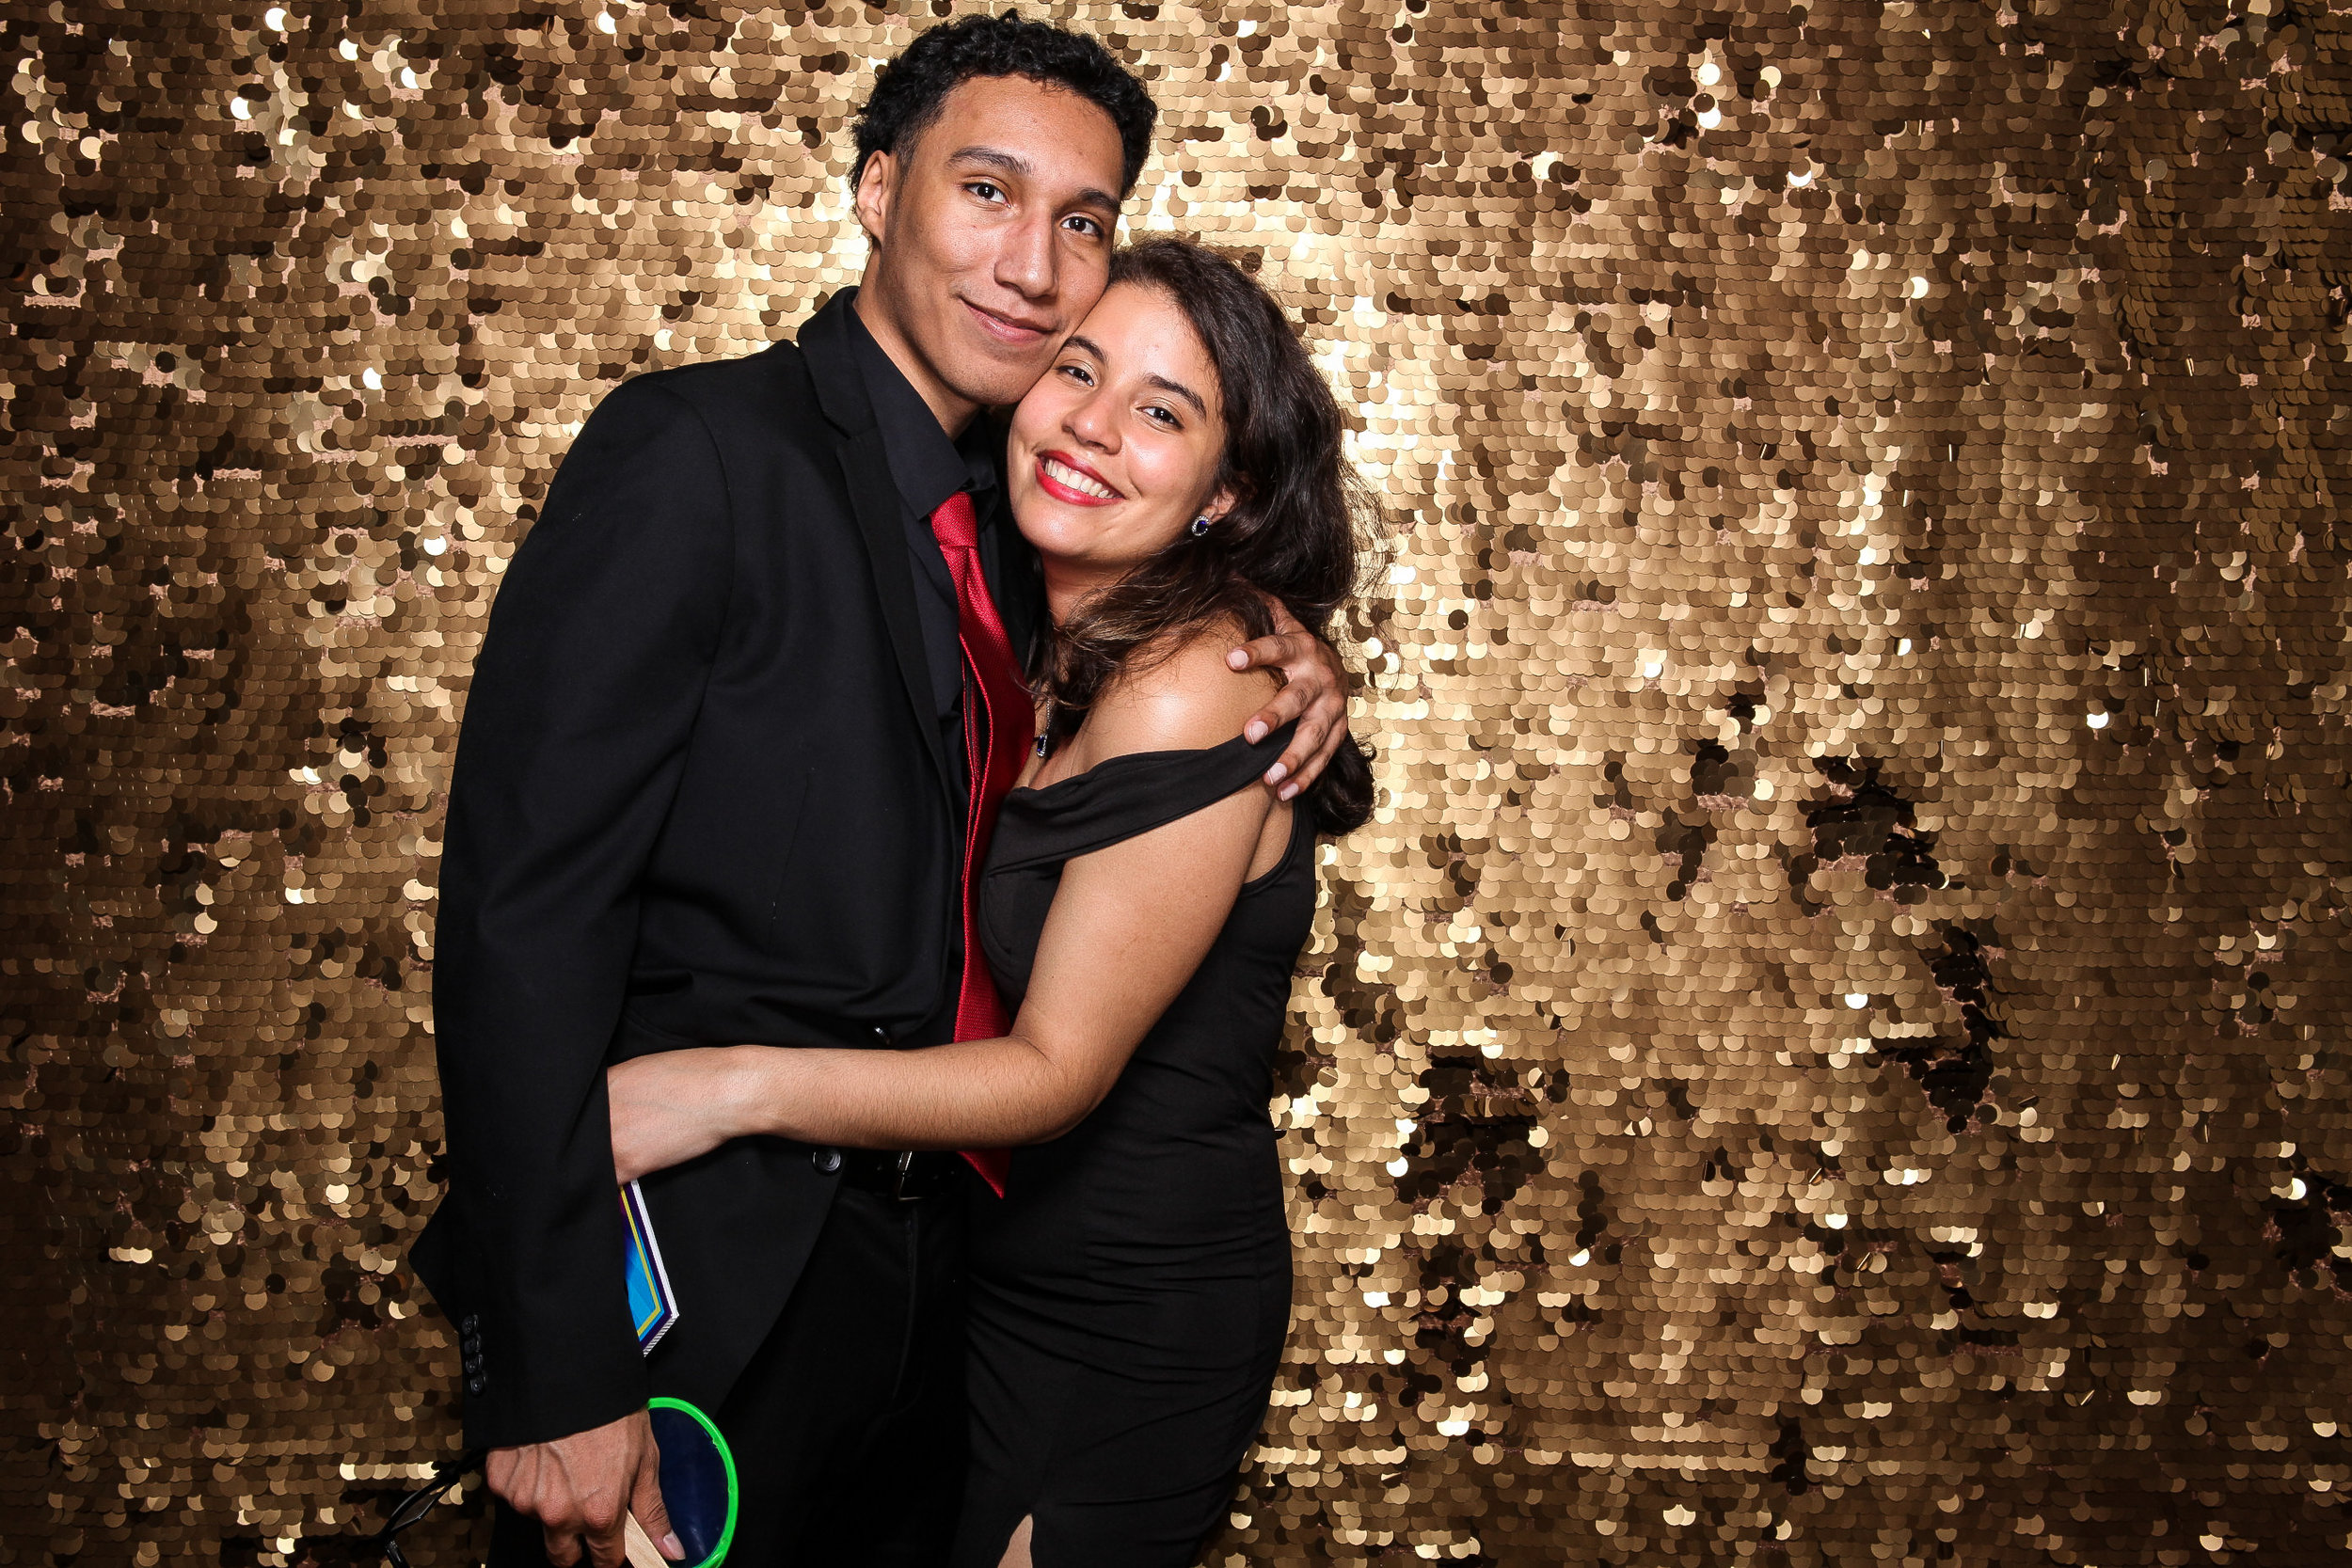 20190503_Adelphi_Senior_Formal-299.jpg